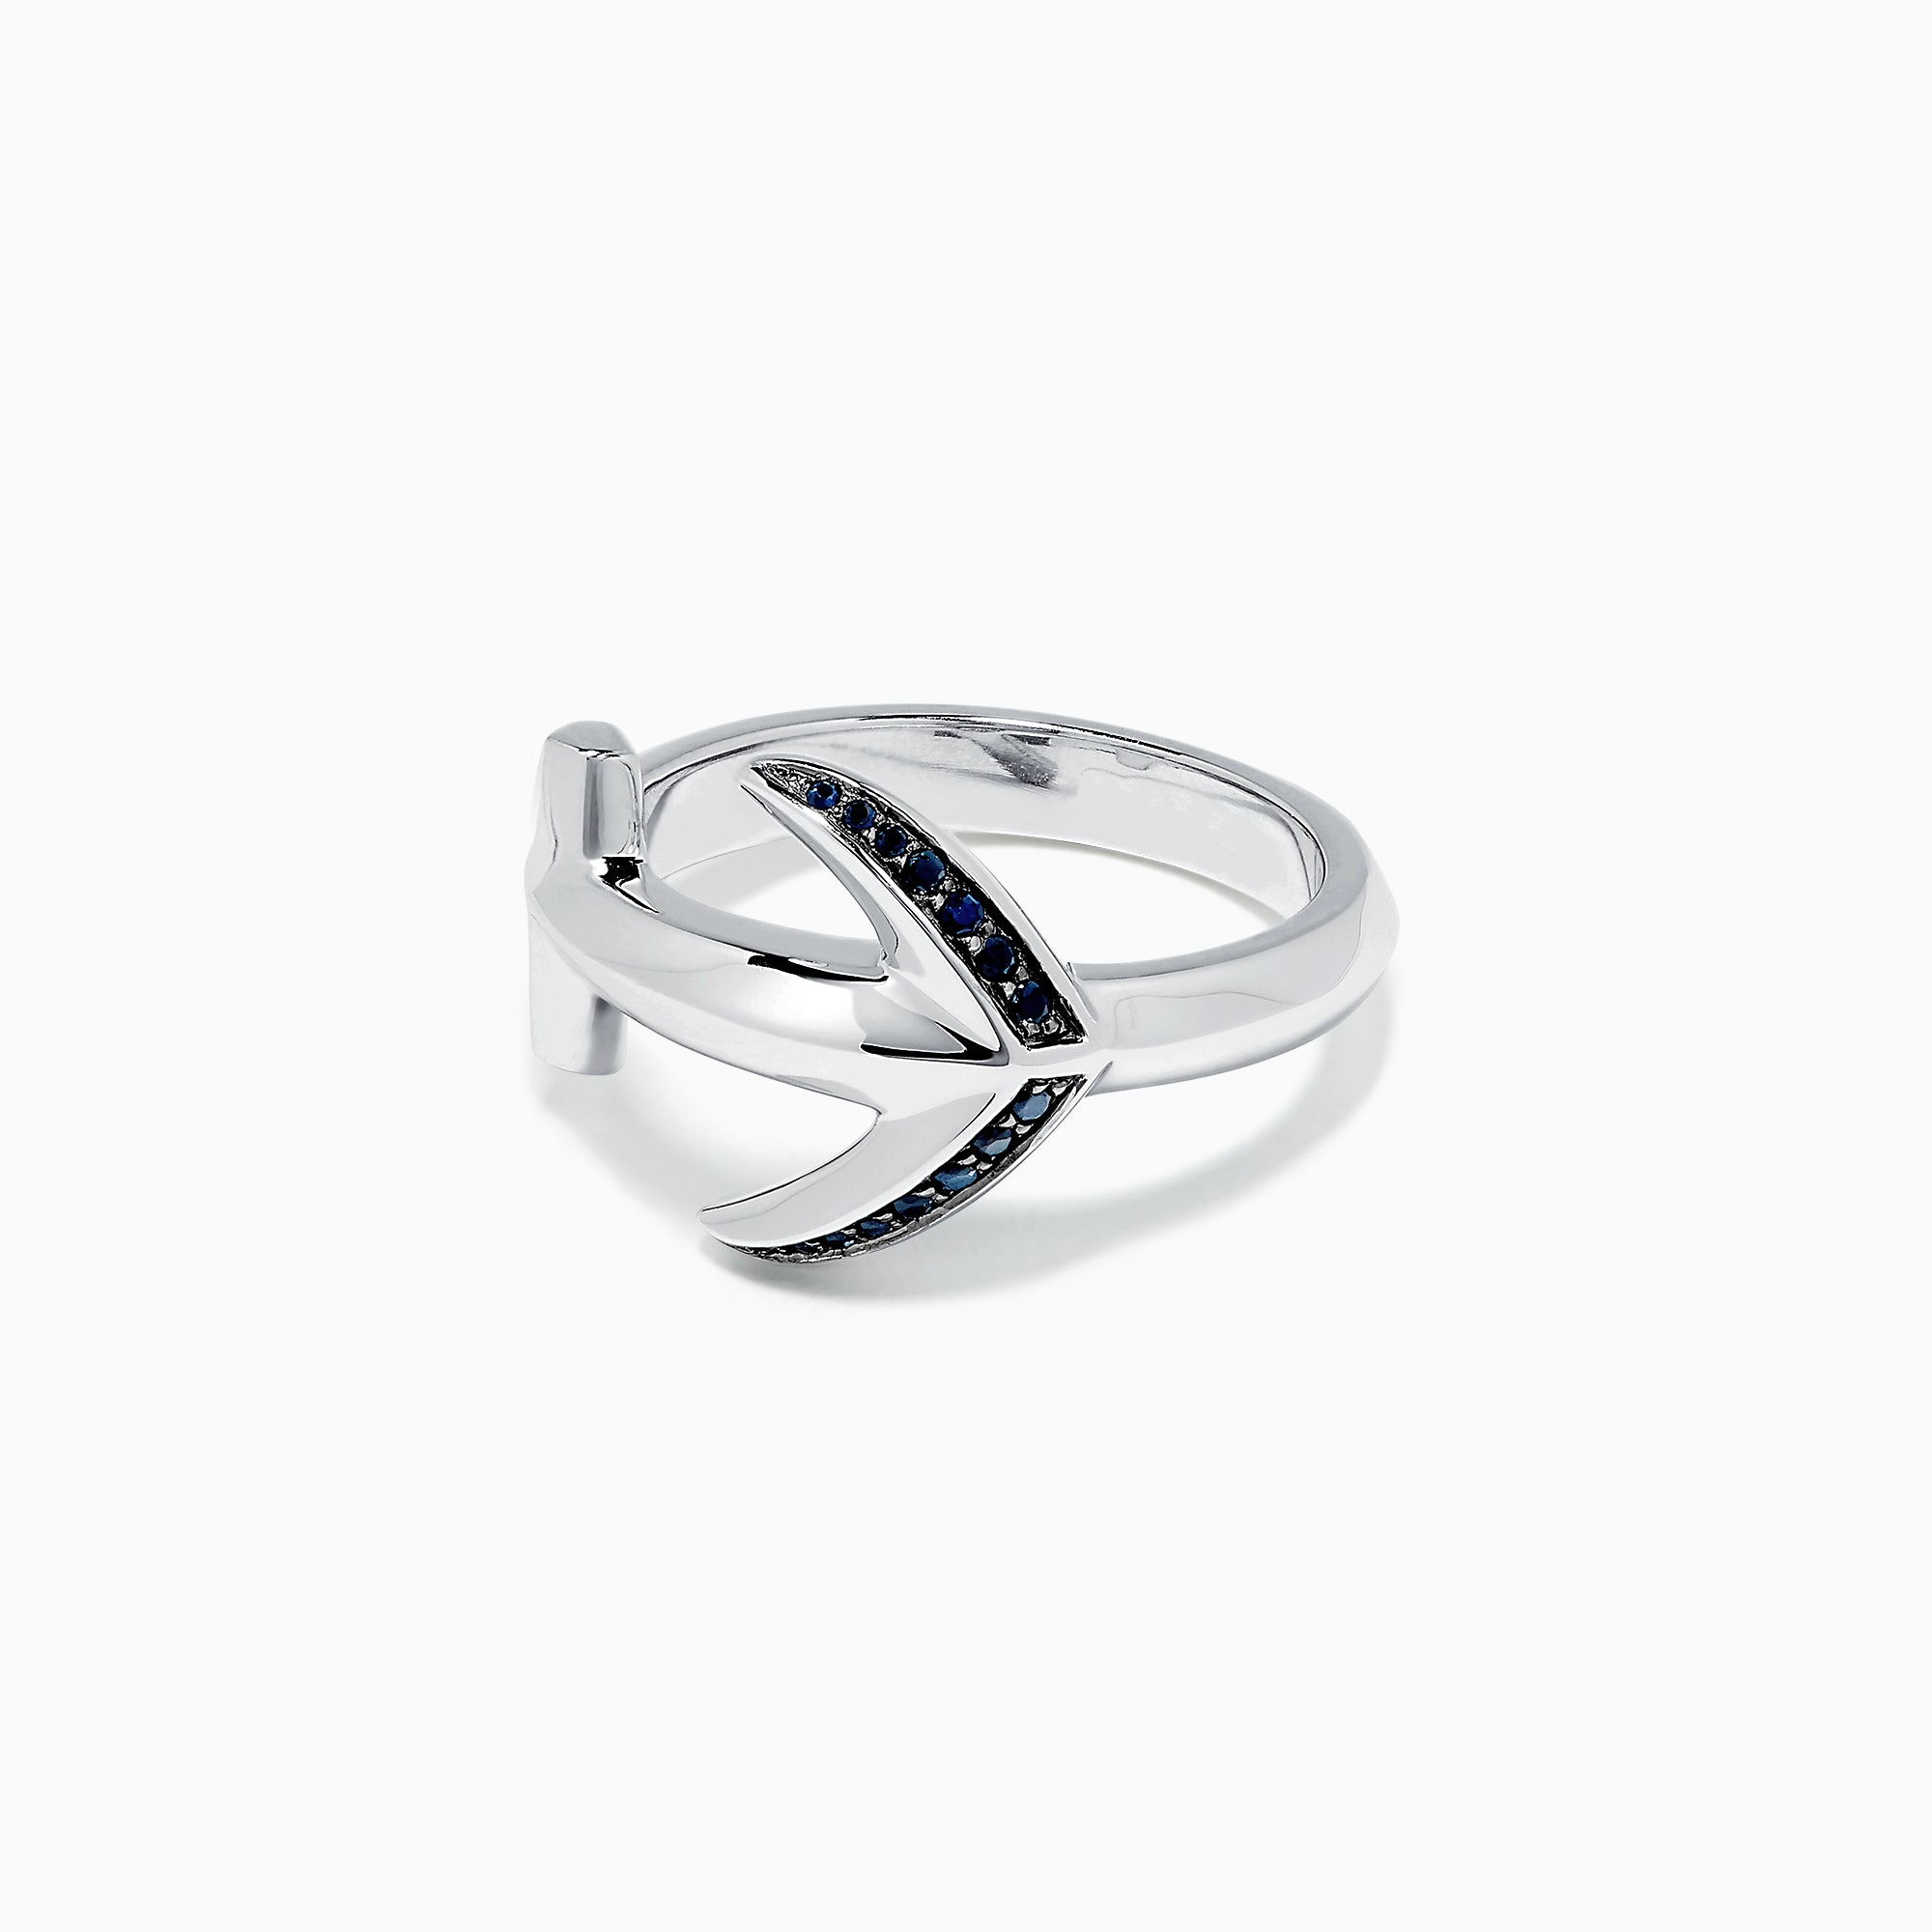 Effy Men's Sterling Silver and Black Sapphire Anchor Ring, 0.14 TCW